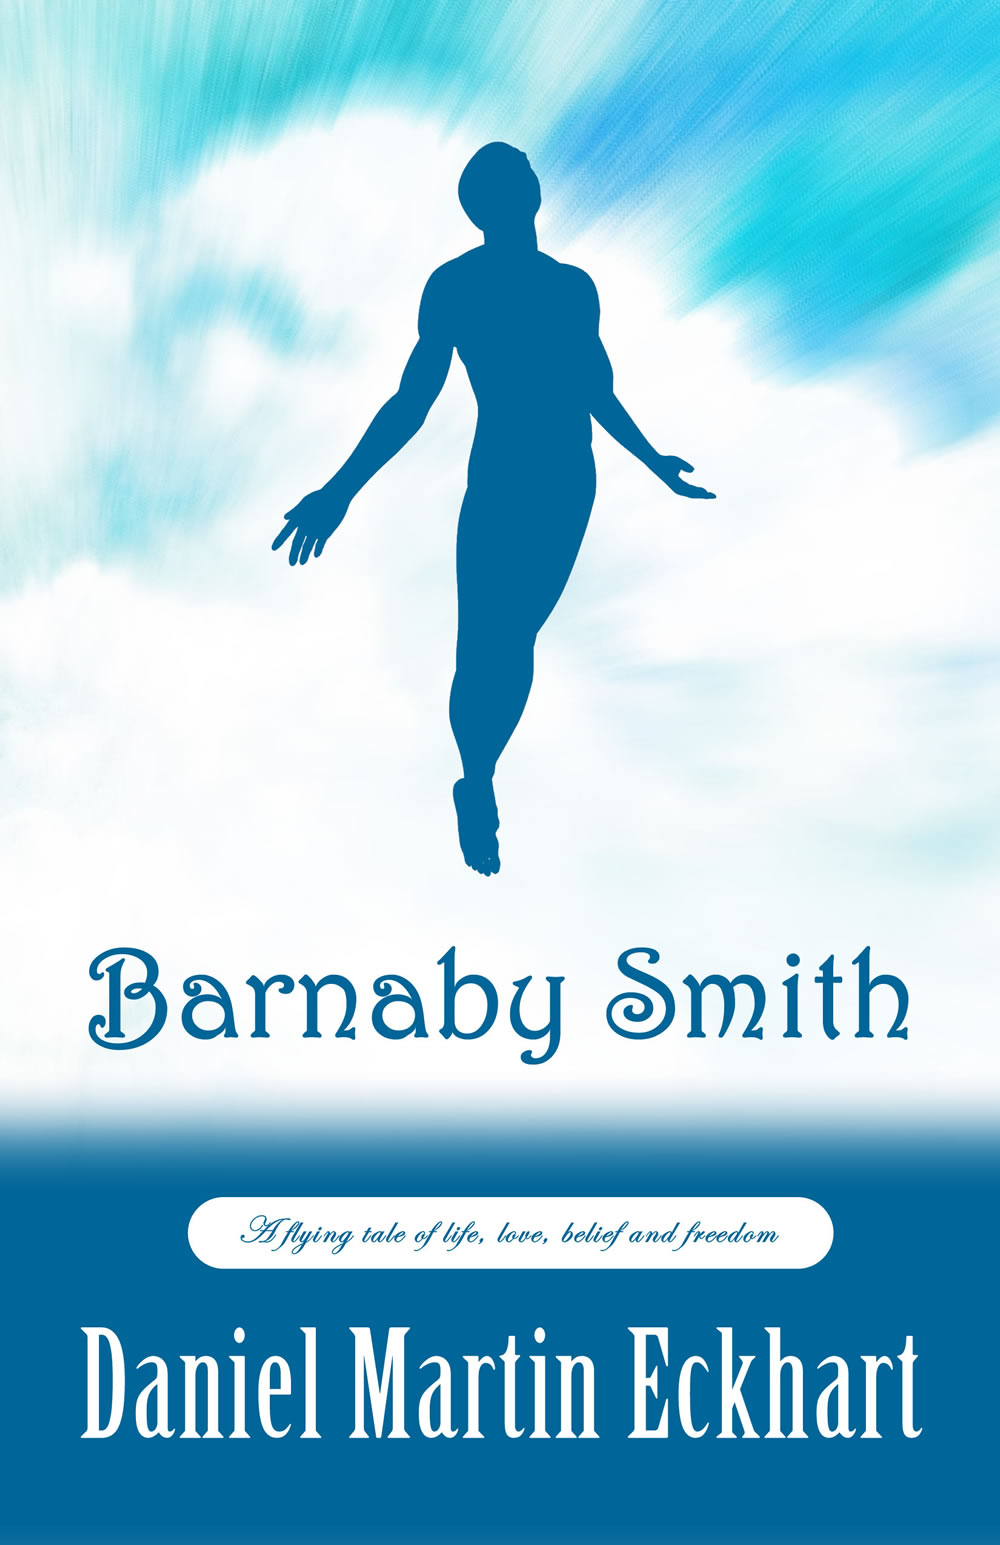 BARNABY SMITH  Contemporary, 238 pages Amazon KDP, Jan 2015  Barnaby Smith is the tale of a most unusual journey by a despairing psychiatrist and her patient - a story about life, love, belief, compromise and freedom ... and yes, the dream of human flight. Six months after her son's suicide, psychiatrist Dr. Martha Lewis takes on a position at Brooklyn's St. Joseph's Hospital where she is given the charge of the Barnaby Smith. Barnaby has tried to fly, like a bird, his entire life. He has jumped off roofs nine times, he has broken every bone in his body. Martha makes it her obsession to bring this man back into life, to save him ... only to realize that Barnaby just may be the key to her own salvation.